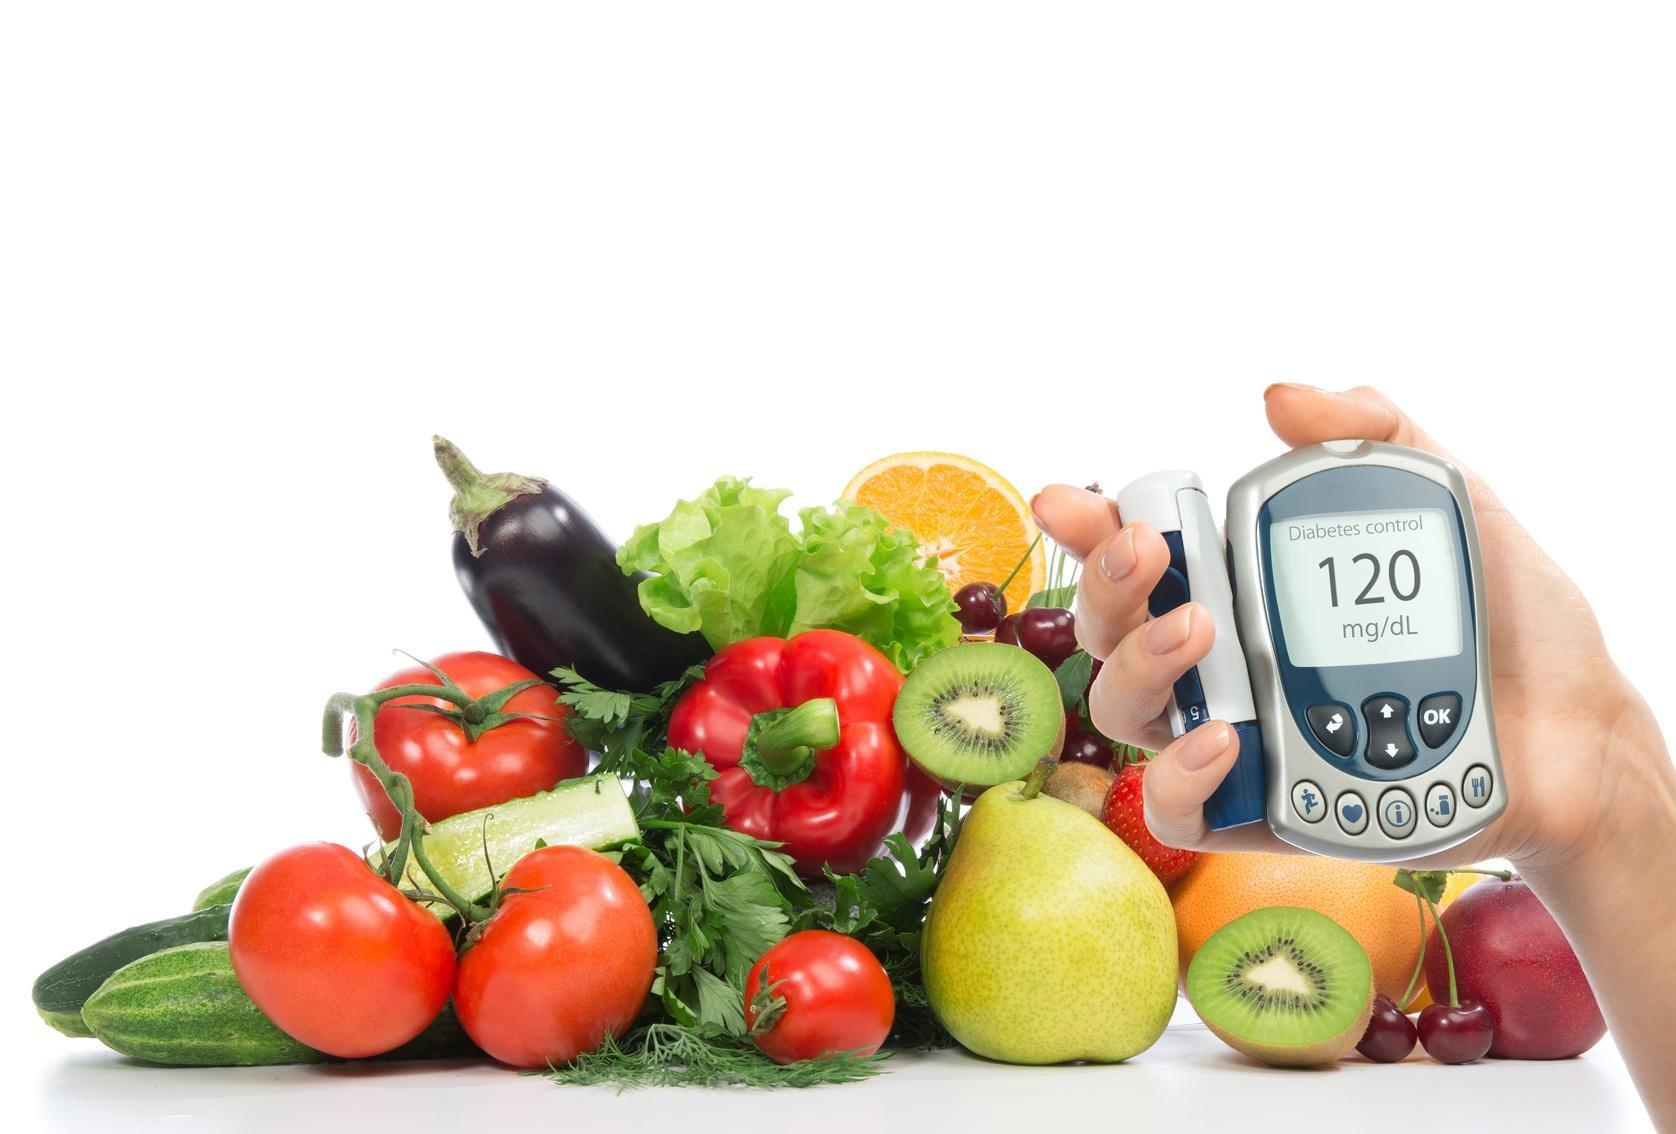 Type 1 Diabetes: Why Is It So Difficult To Lose Weight Being A Type 1 Diabetic? Something To Do With Insulin?